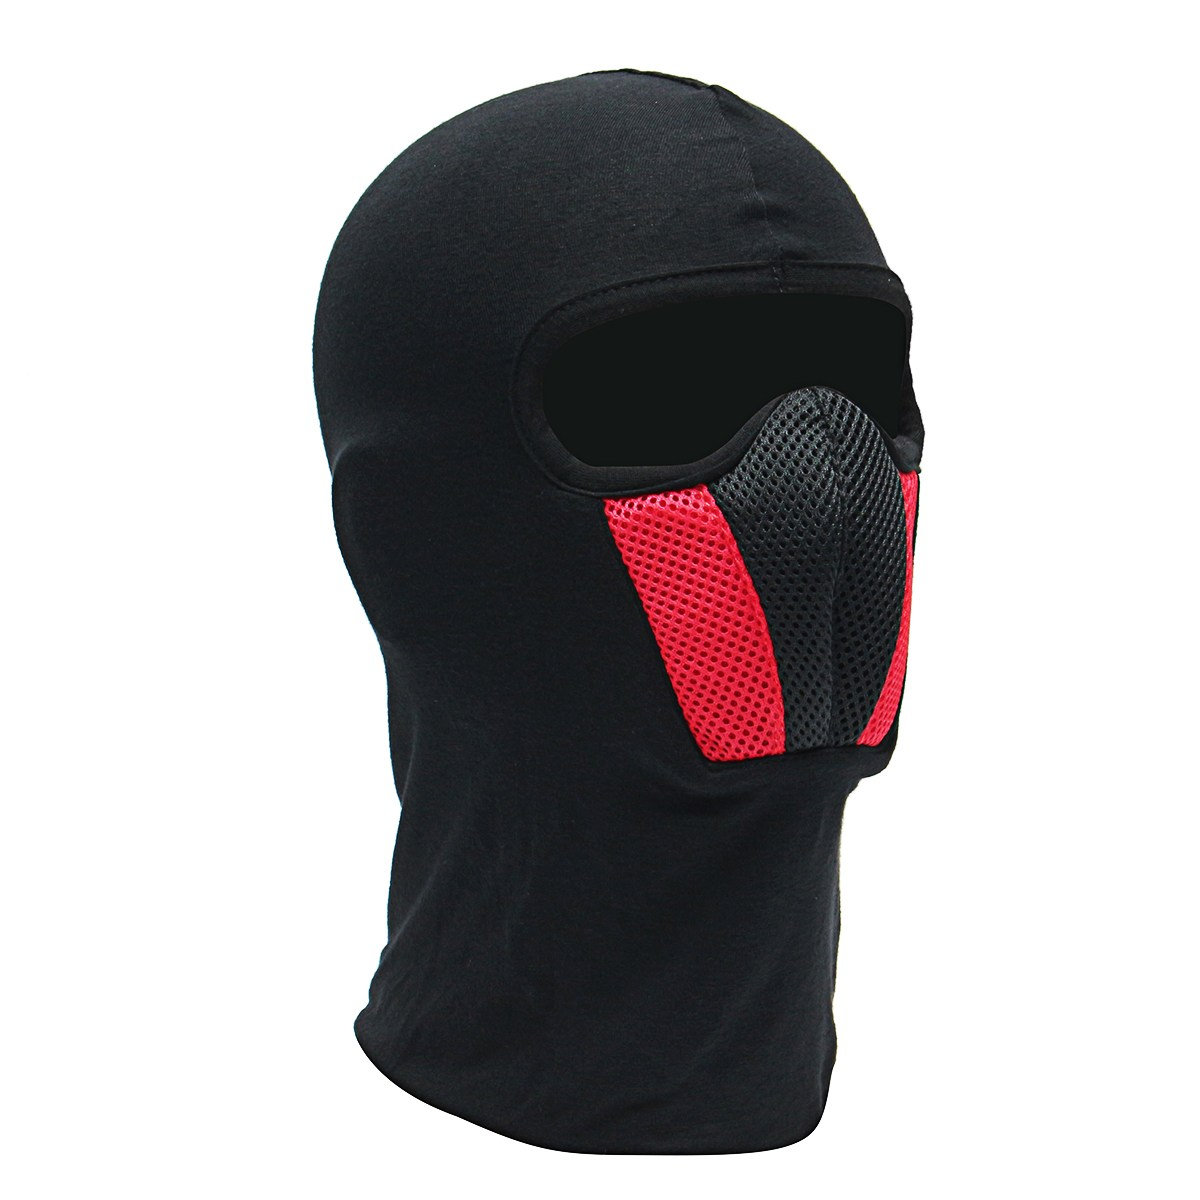 Windproof Motorbike Cycling Face Mask Balaclava Outdoor Riding Bike Ski Face Mask Breathable Motorcycle Helmet Hood купить недорого в Москве